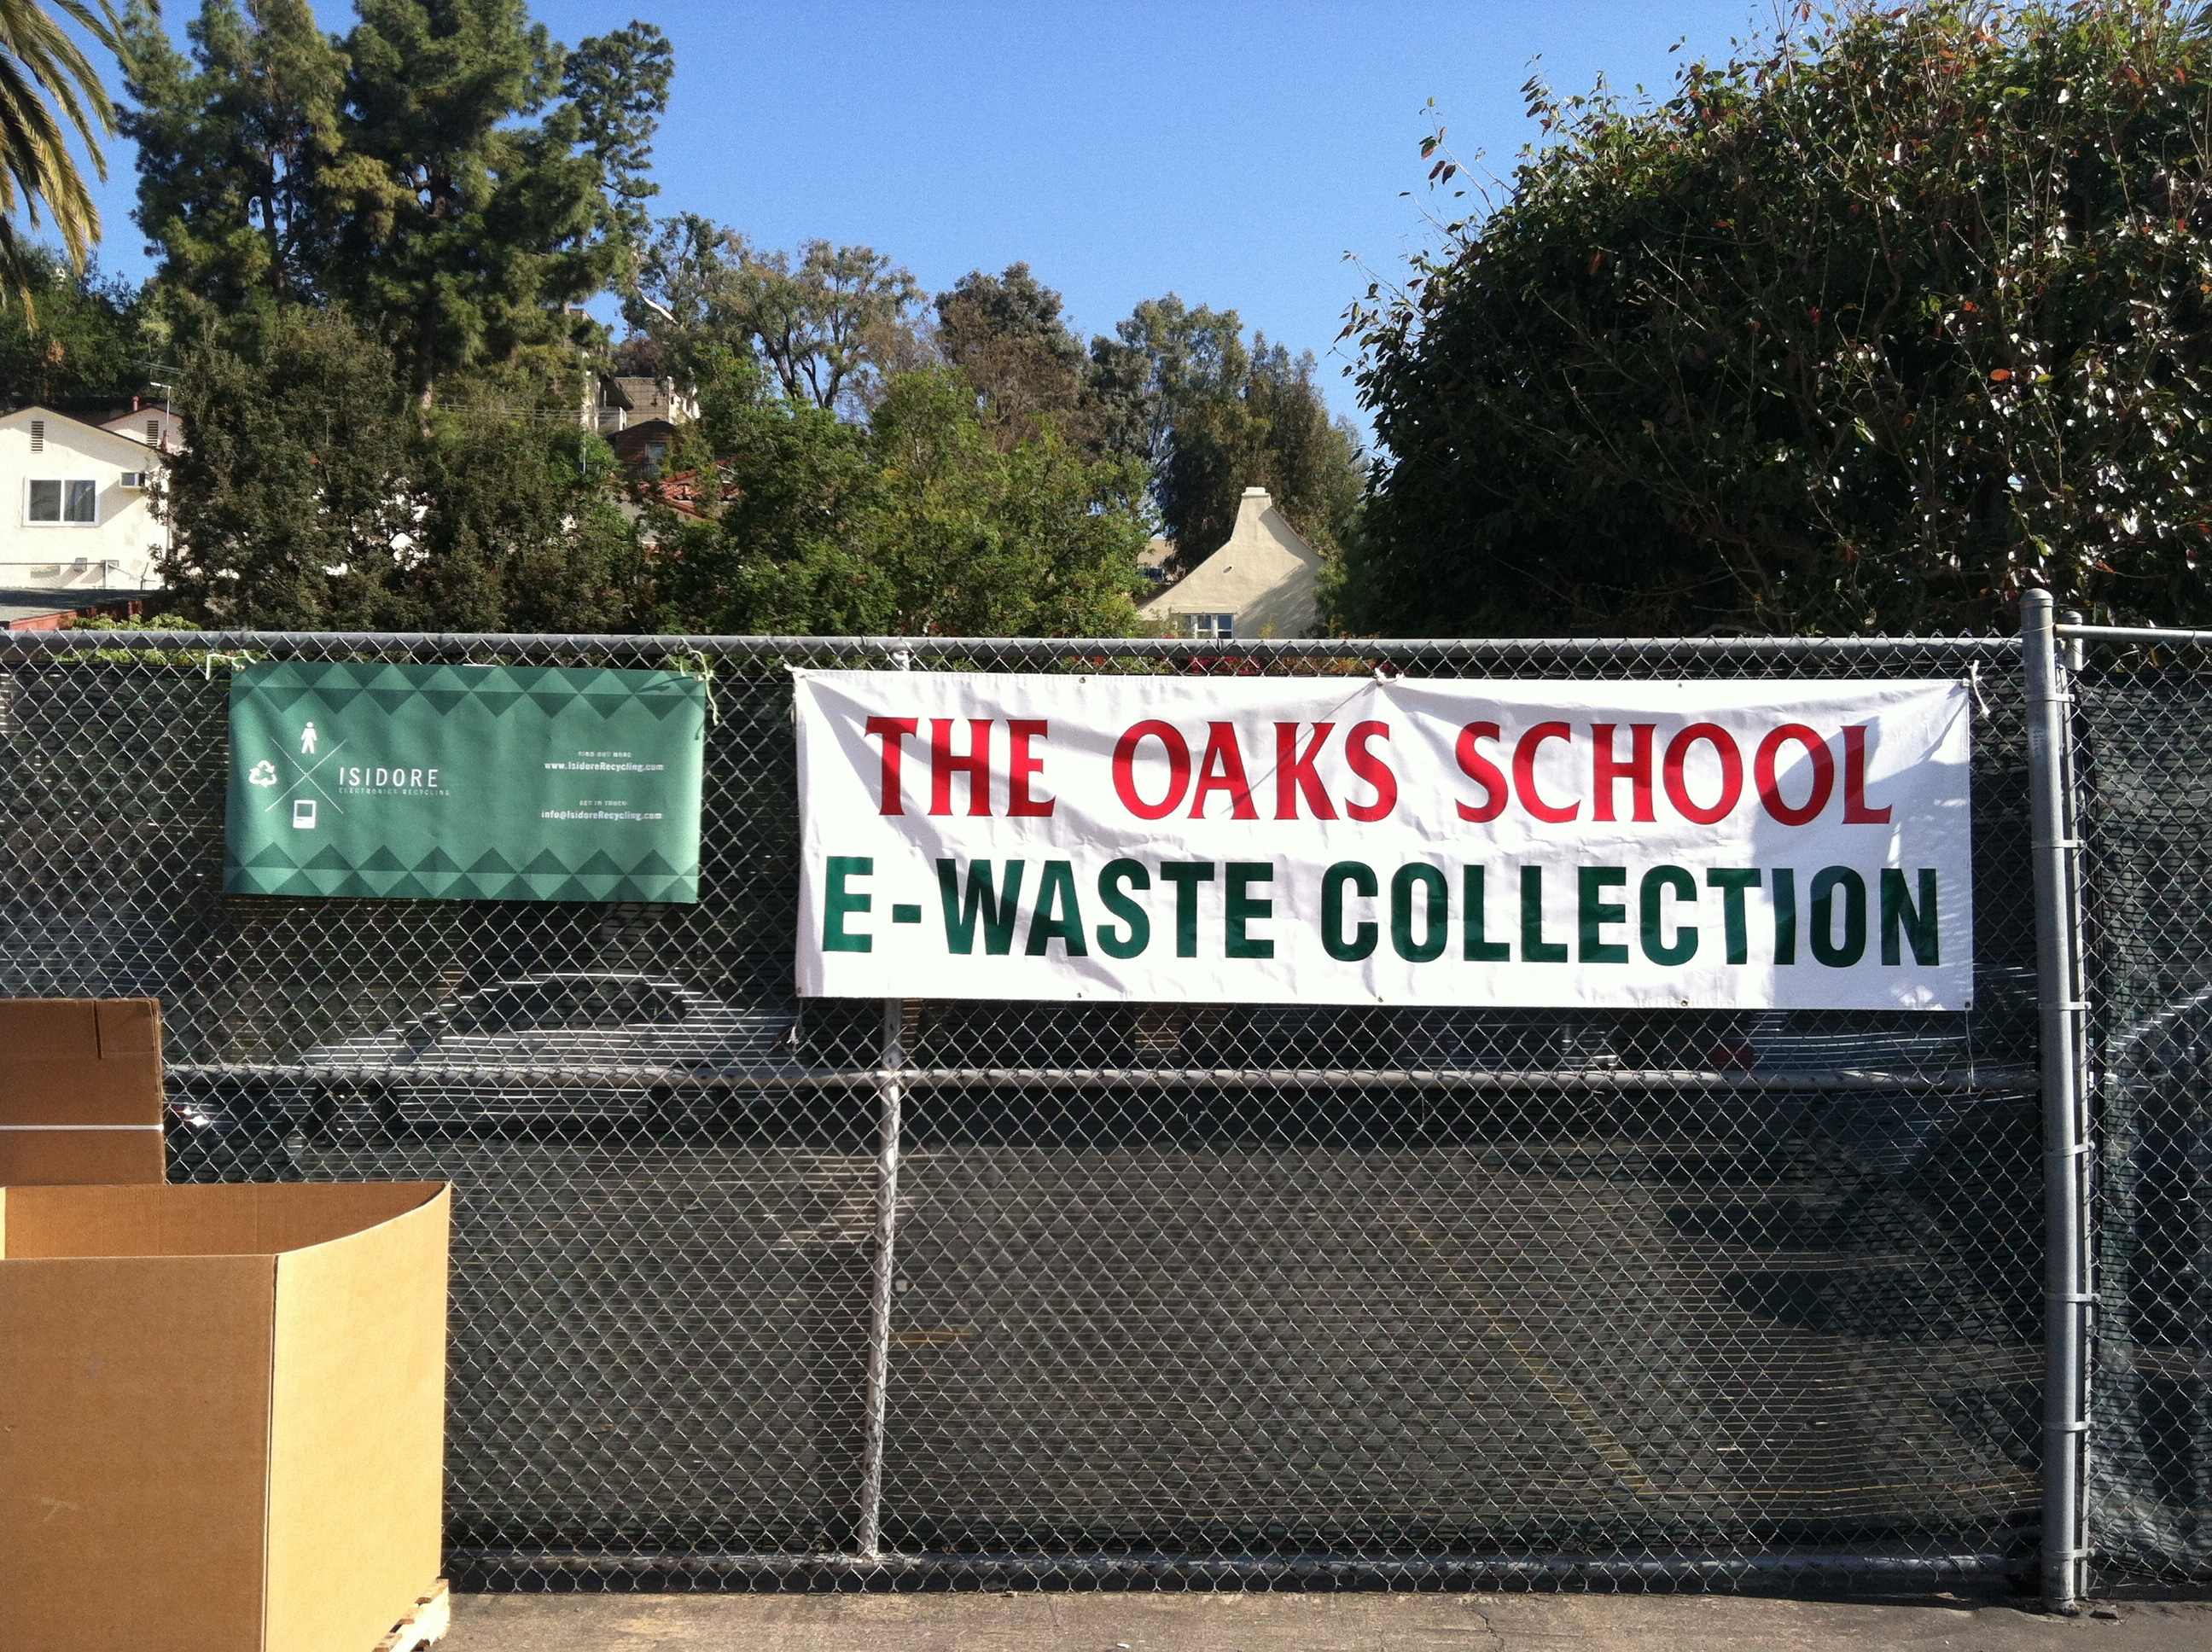 Oaks_School_Collection.JPG